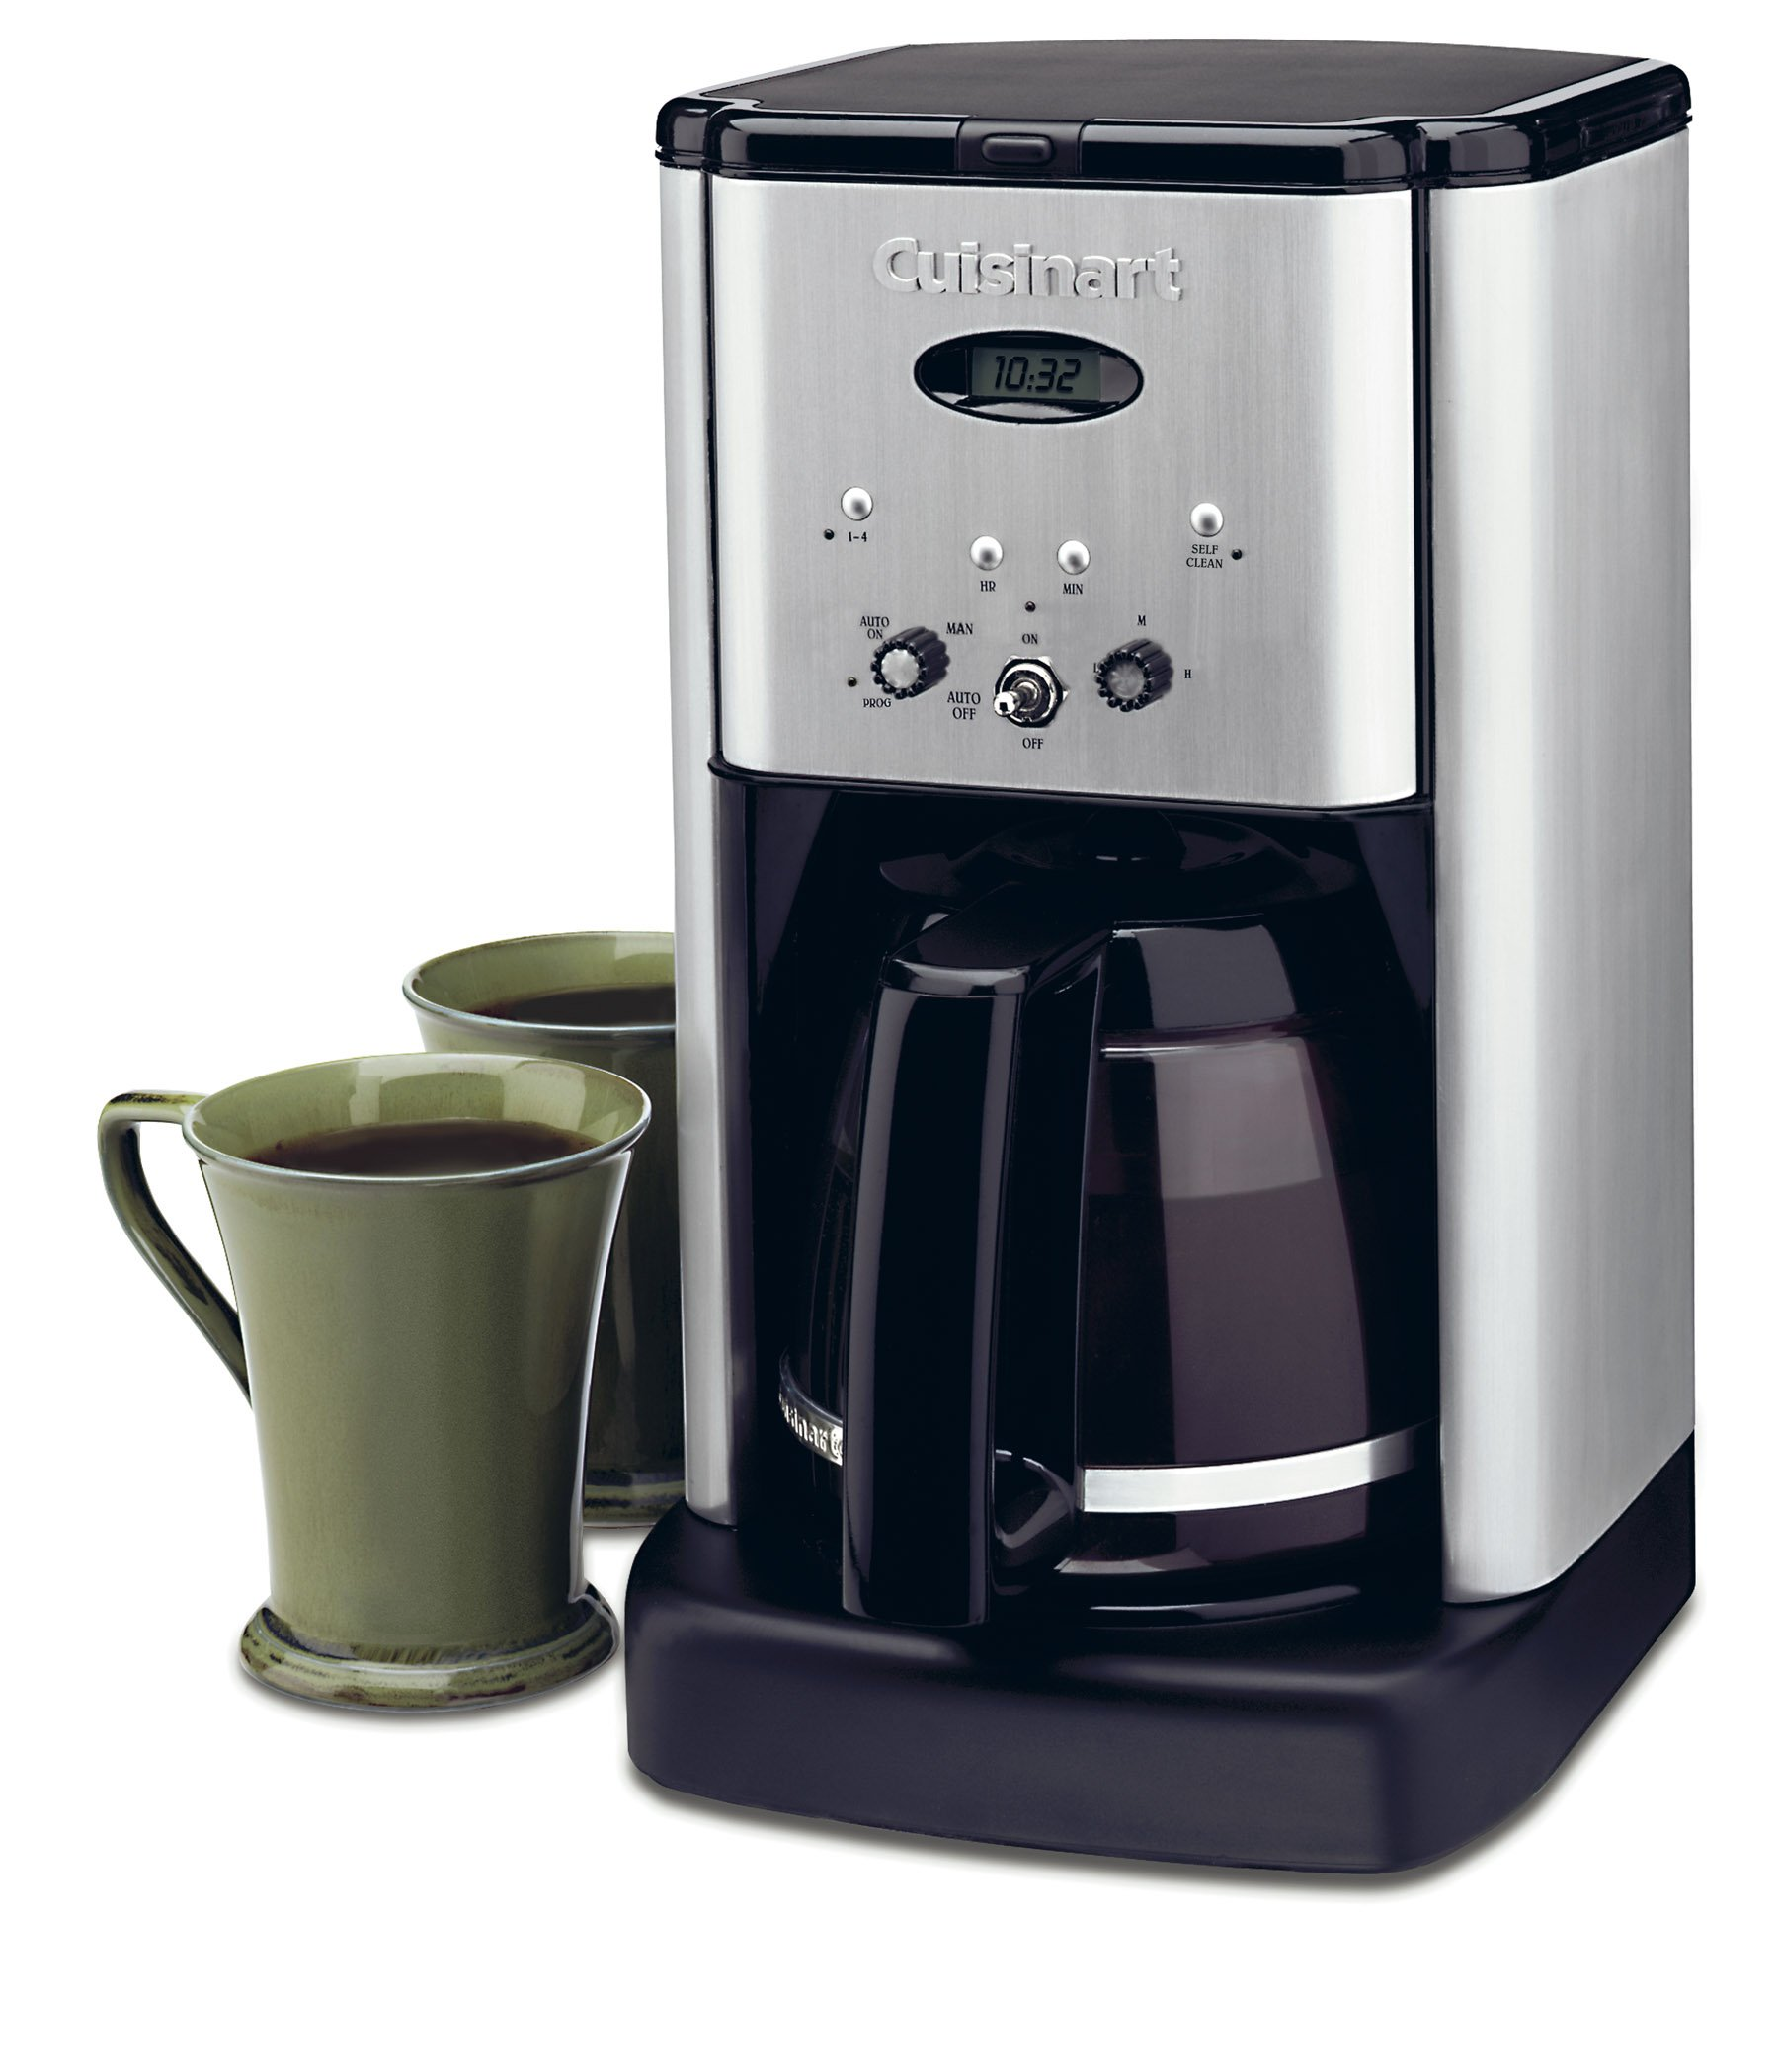 Cuisinart DCC-1200 Brew Central 12 Cup Programmable Coffeemaker, Black/Silver by Cuisinart (Image #6)